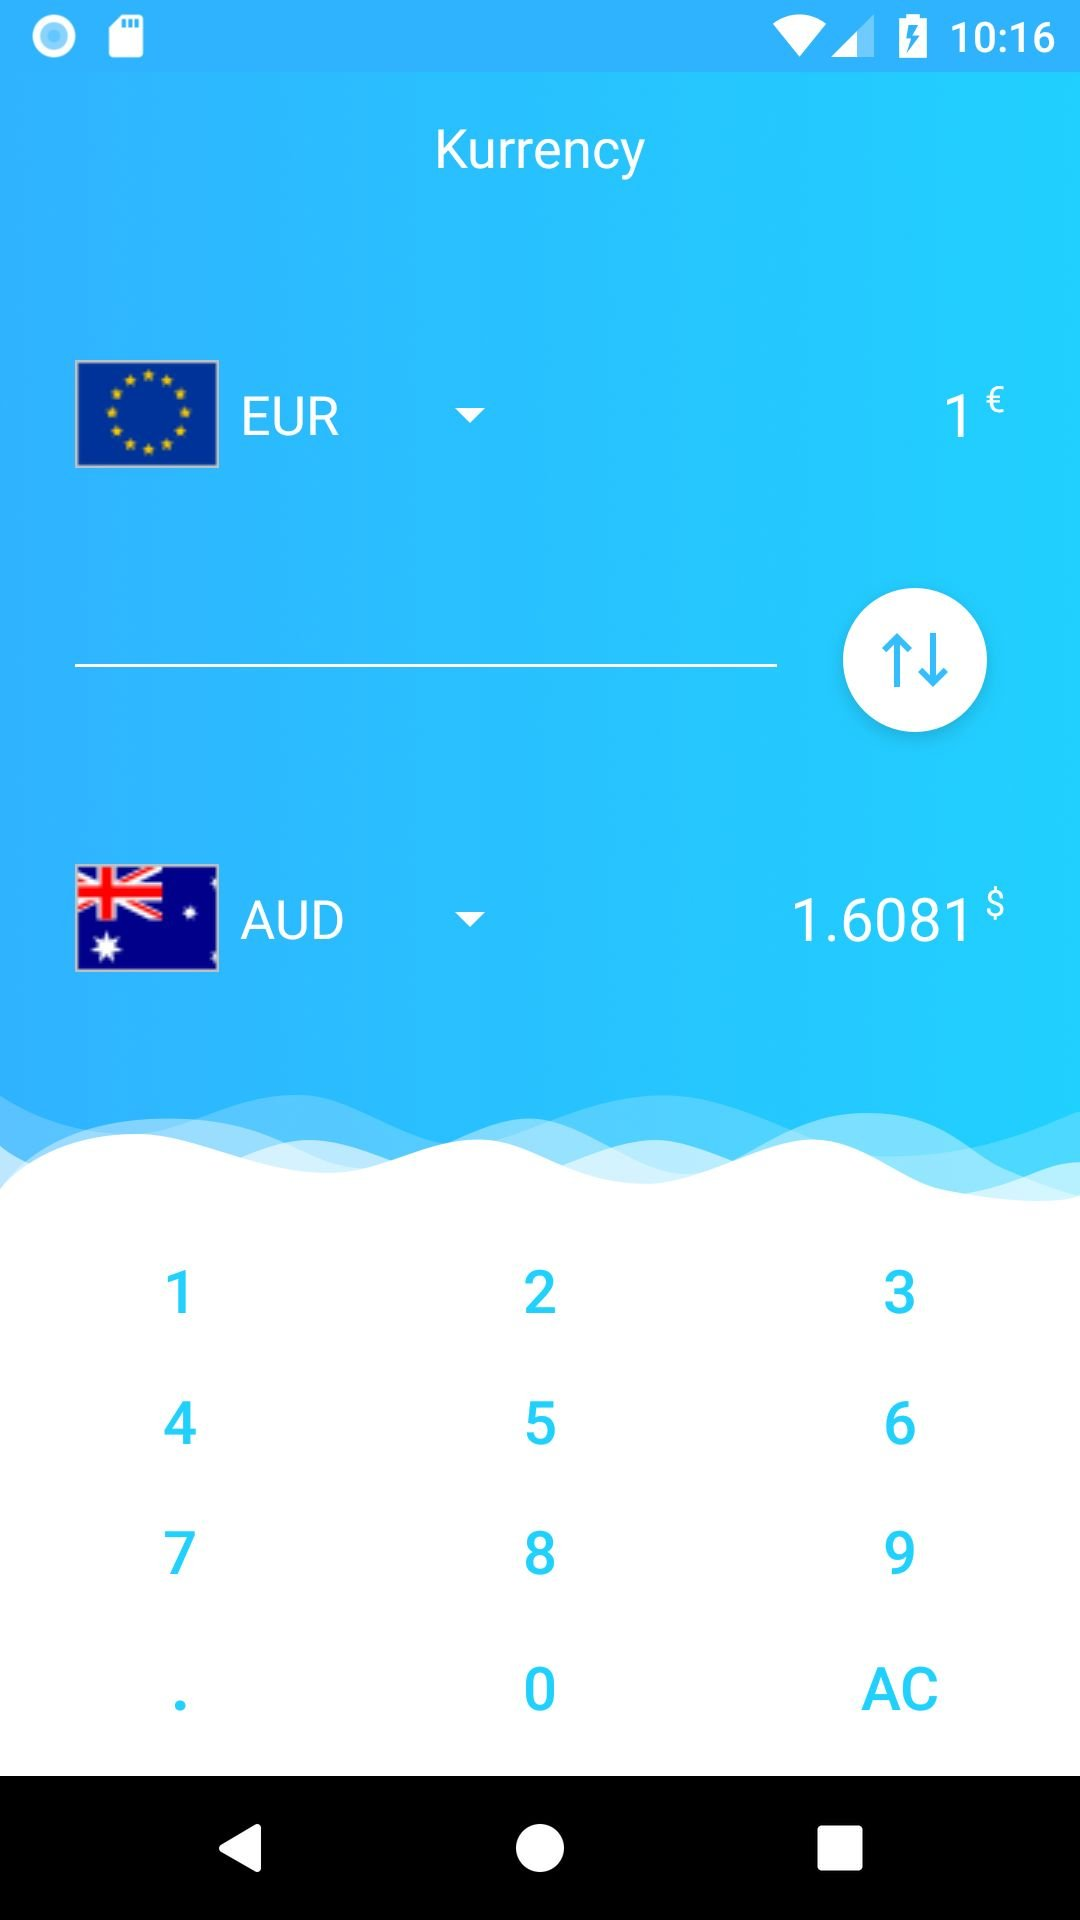 Kurrency - Currency Converter Android Template Screenshot 2